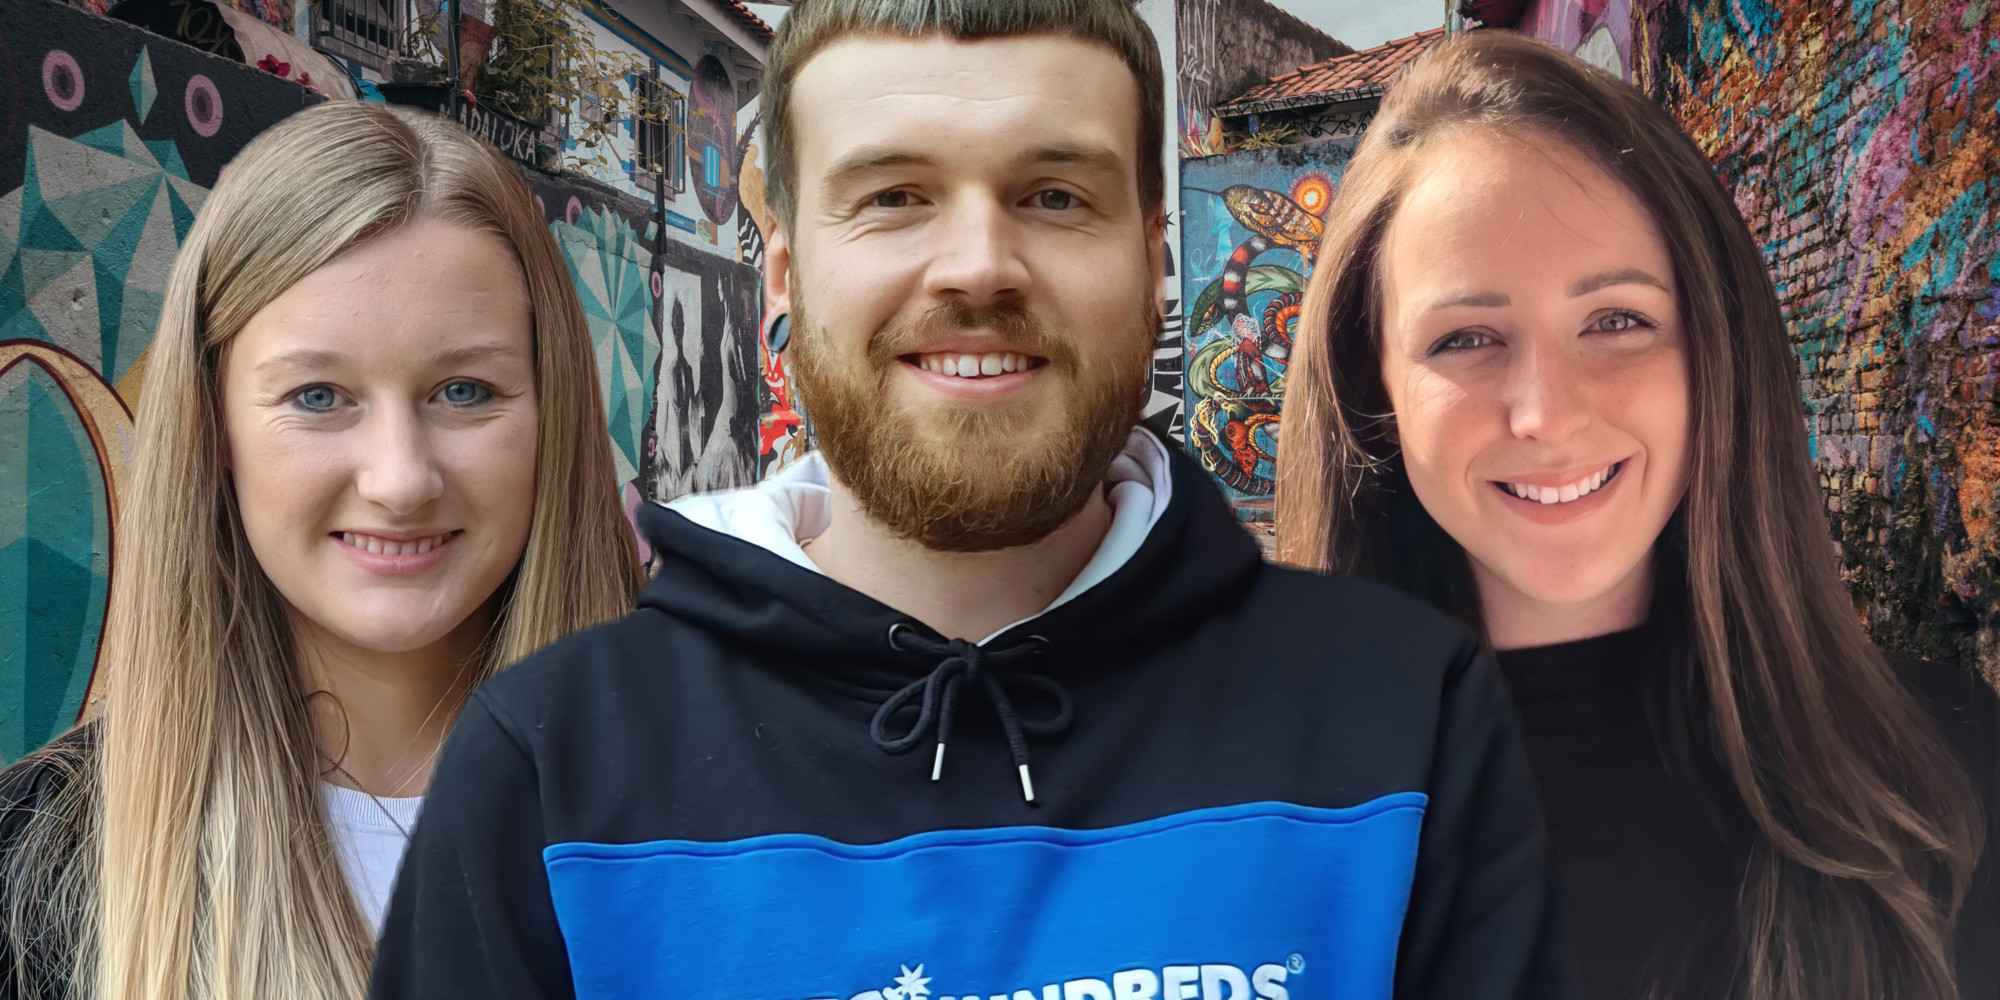 From A to Z - Meet Our New Starters Aimee, Joe and Zoe